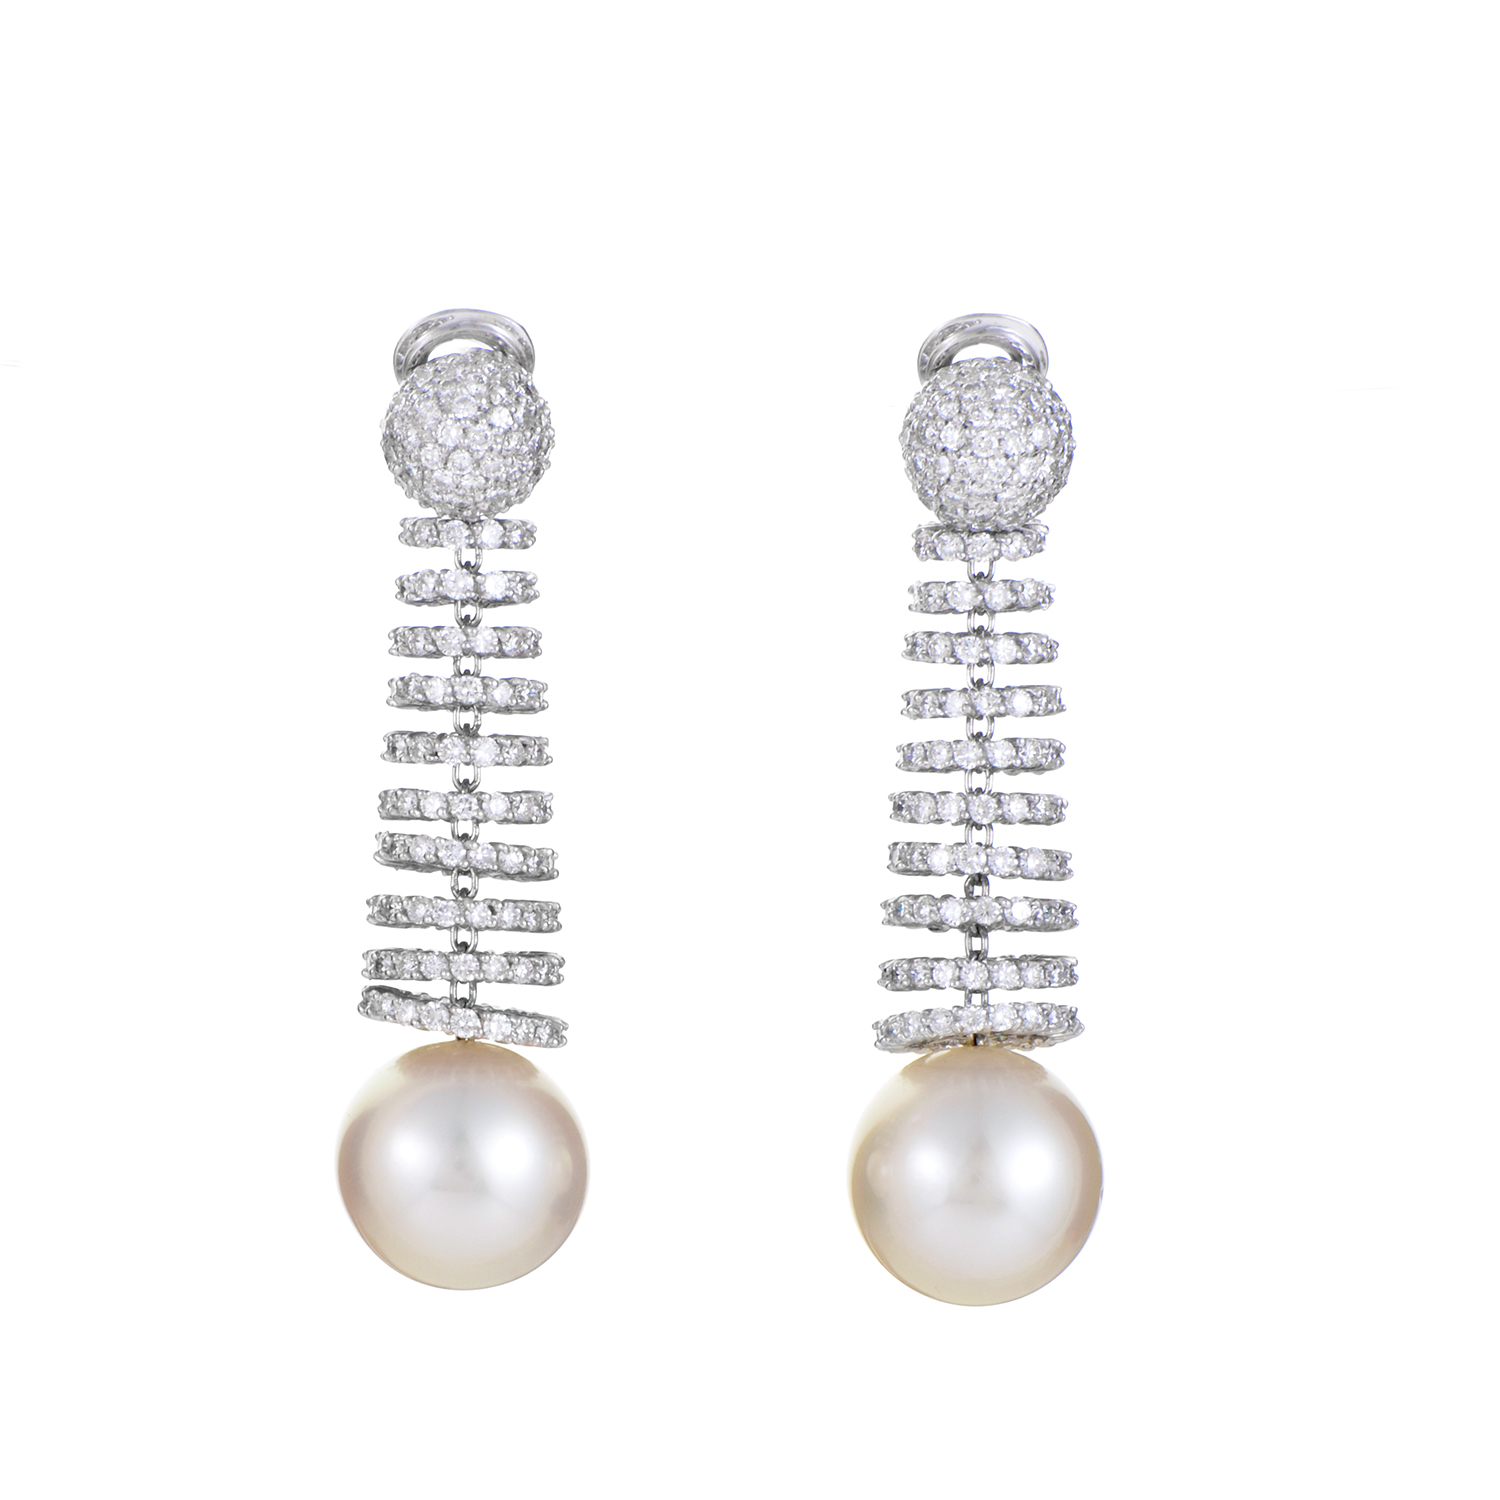 Women's 18K White Gold Diamond & Pearl Clip-On Earrings DEG01-021016